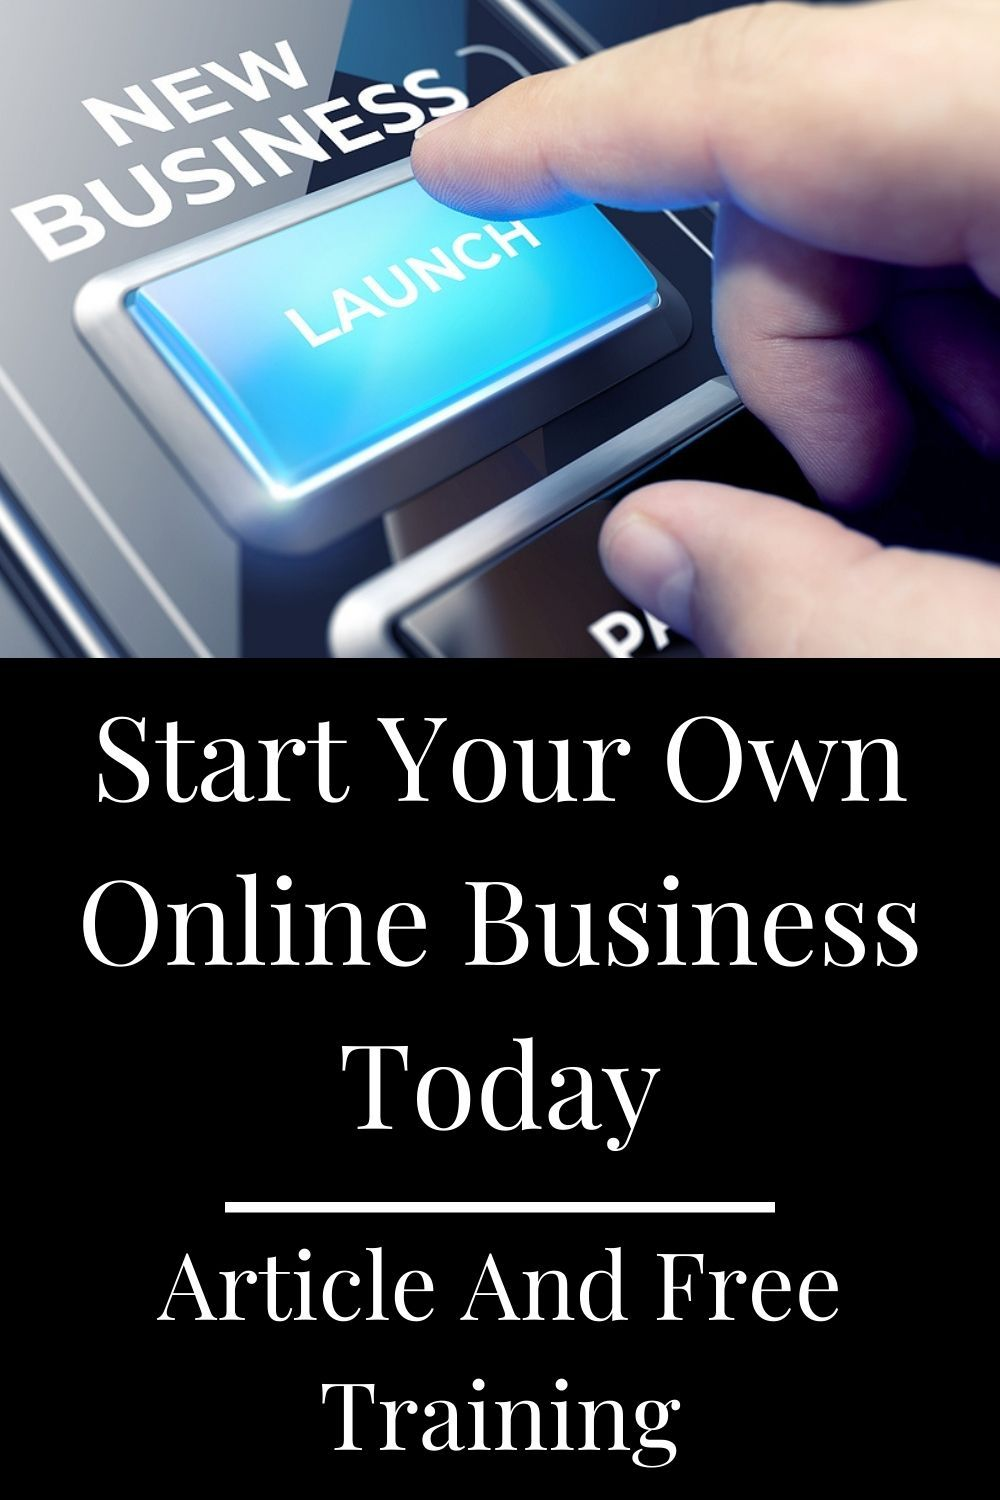 In todays world, it is important for people to take their financial security into their own hands. Many are choosing to start their own online businesses from home. This article also links to free training that enables you to learn the skills set today. #entrepreneur #entrepreneurtips #entrepreneurquotes #business #homebasedentrepreneur #homebusinessentrepreneur #onlinebusinessentrepreneur #homebusiness #mompreneur #femaleentrepreneur #article #success #selfemployed #money